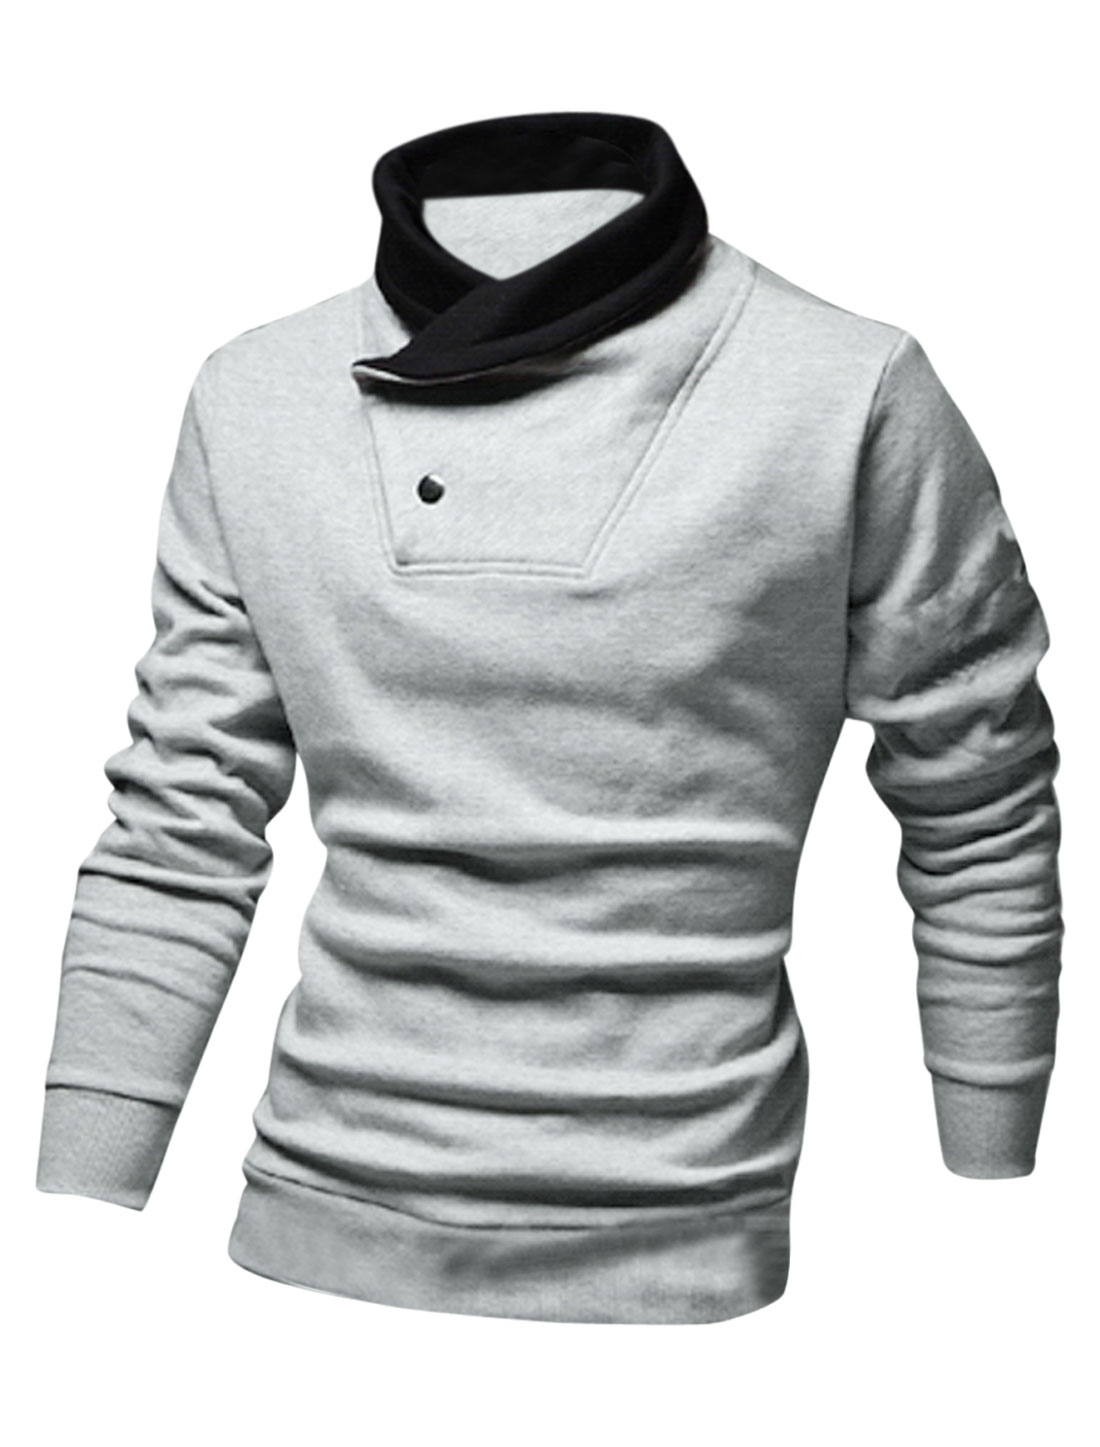 Men Cocoon Neck Two Snap Buttons Closed Leisure Sweatshirt Light Gray M